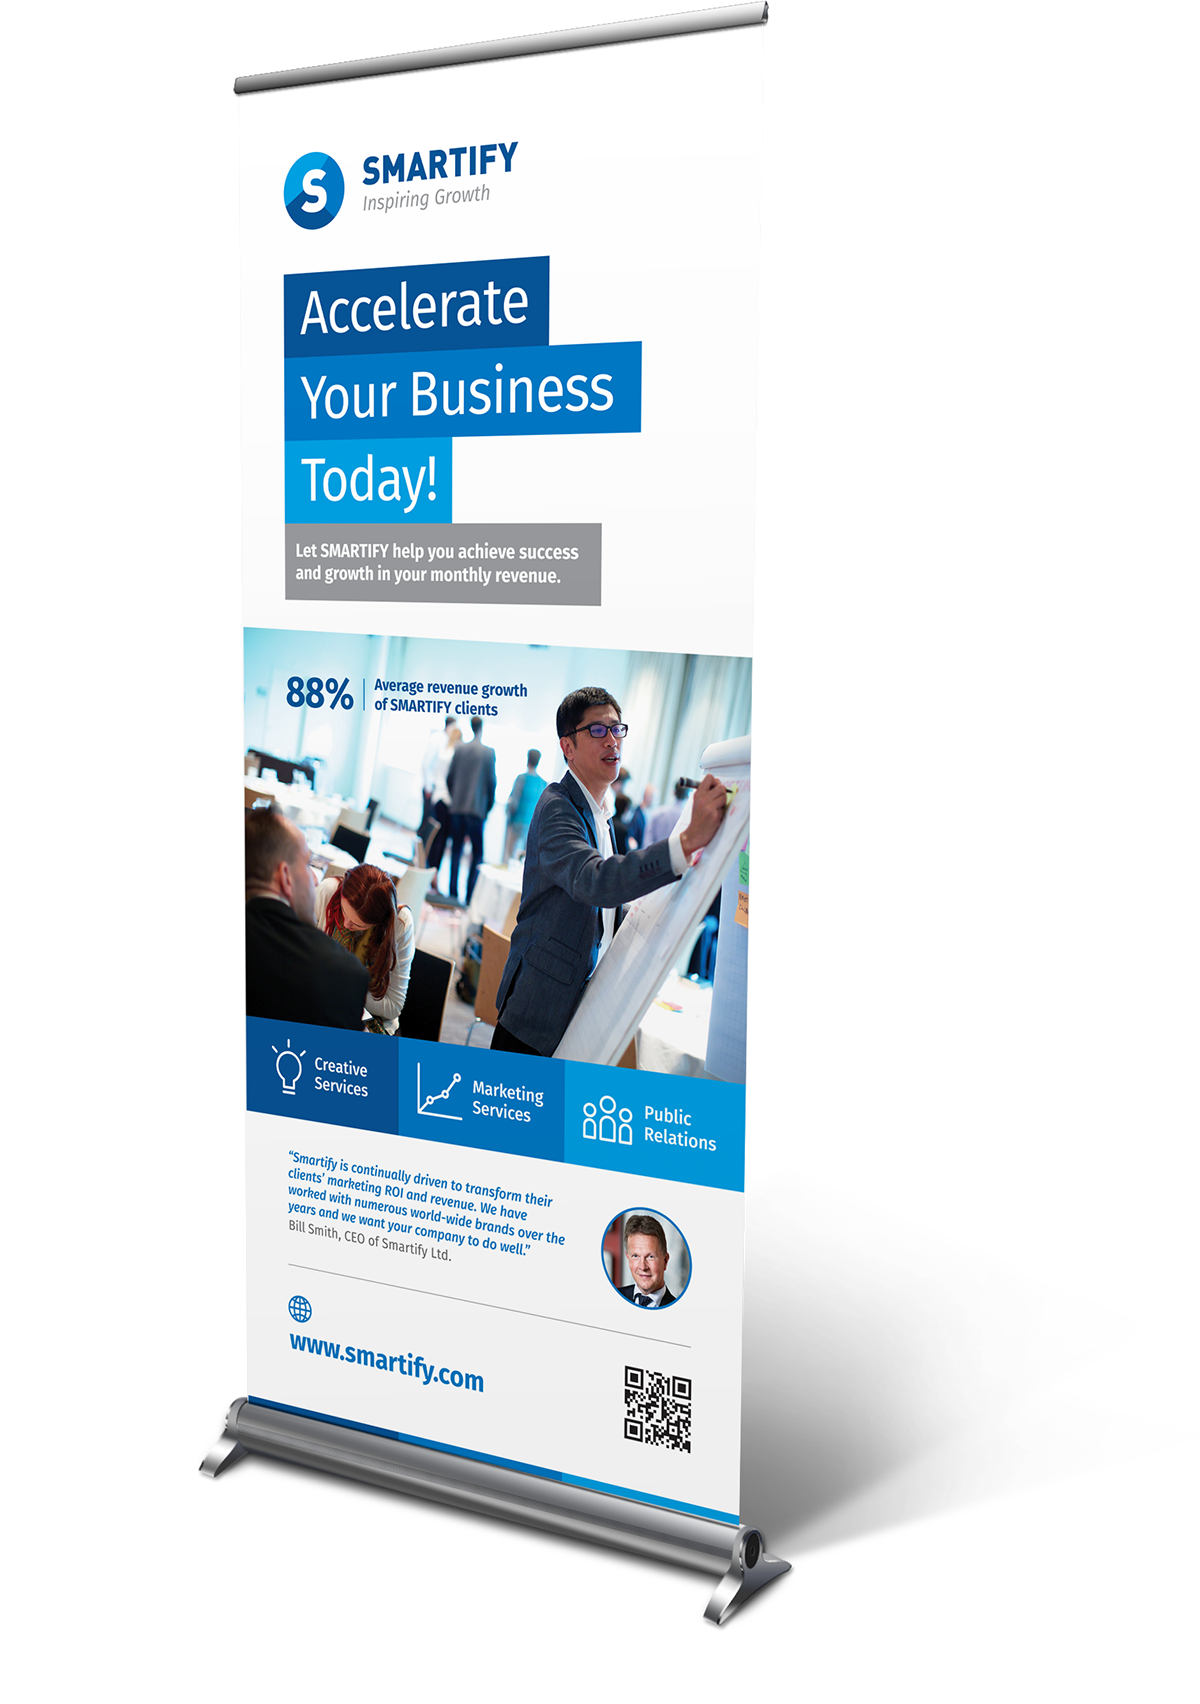 corporate business roll up banners template for download graphic